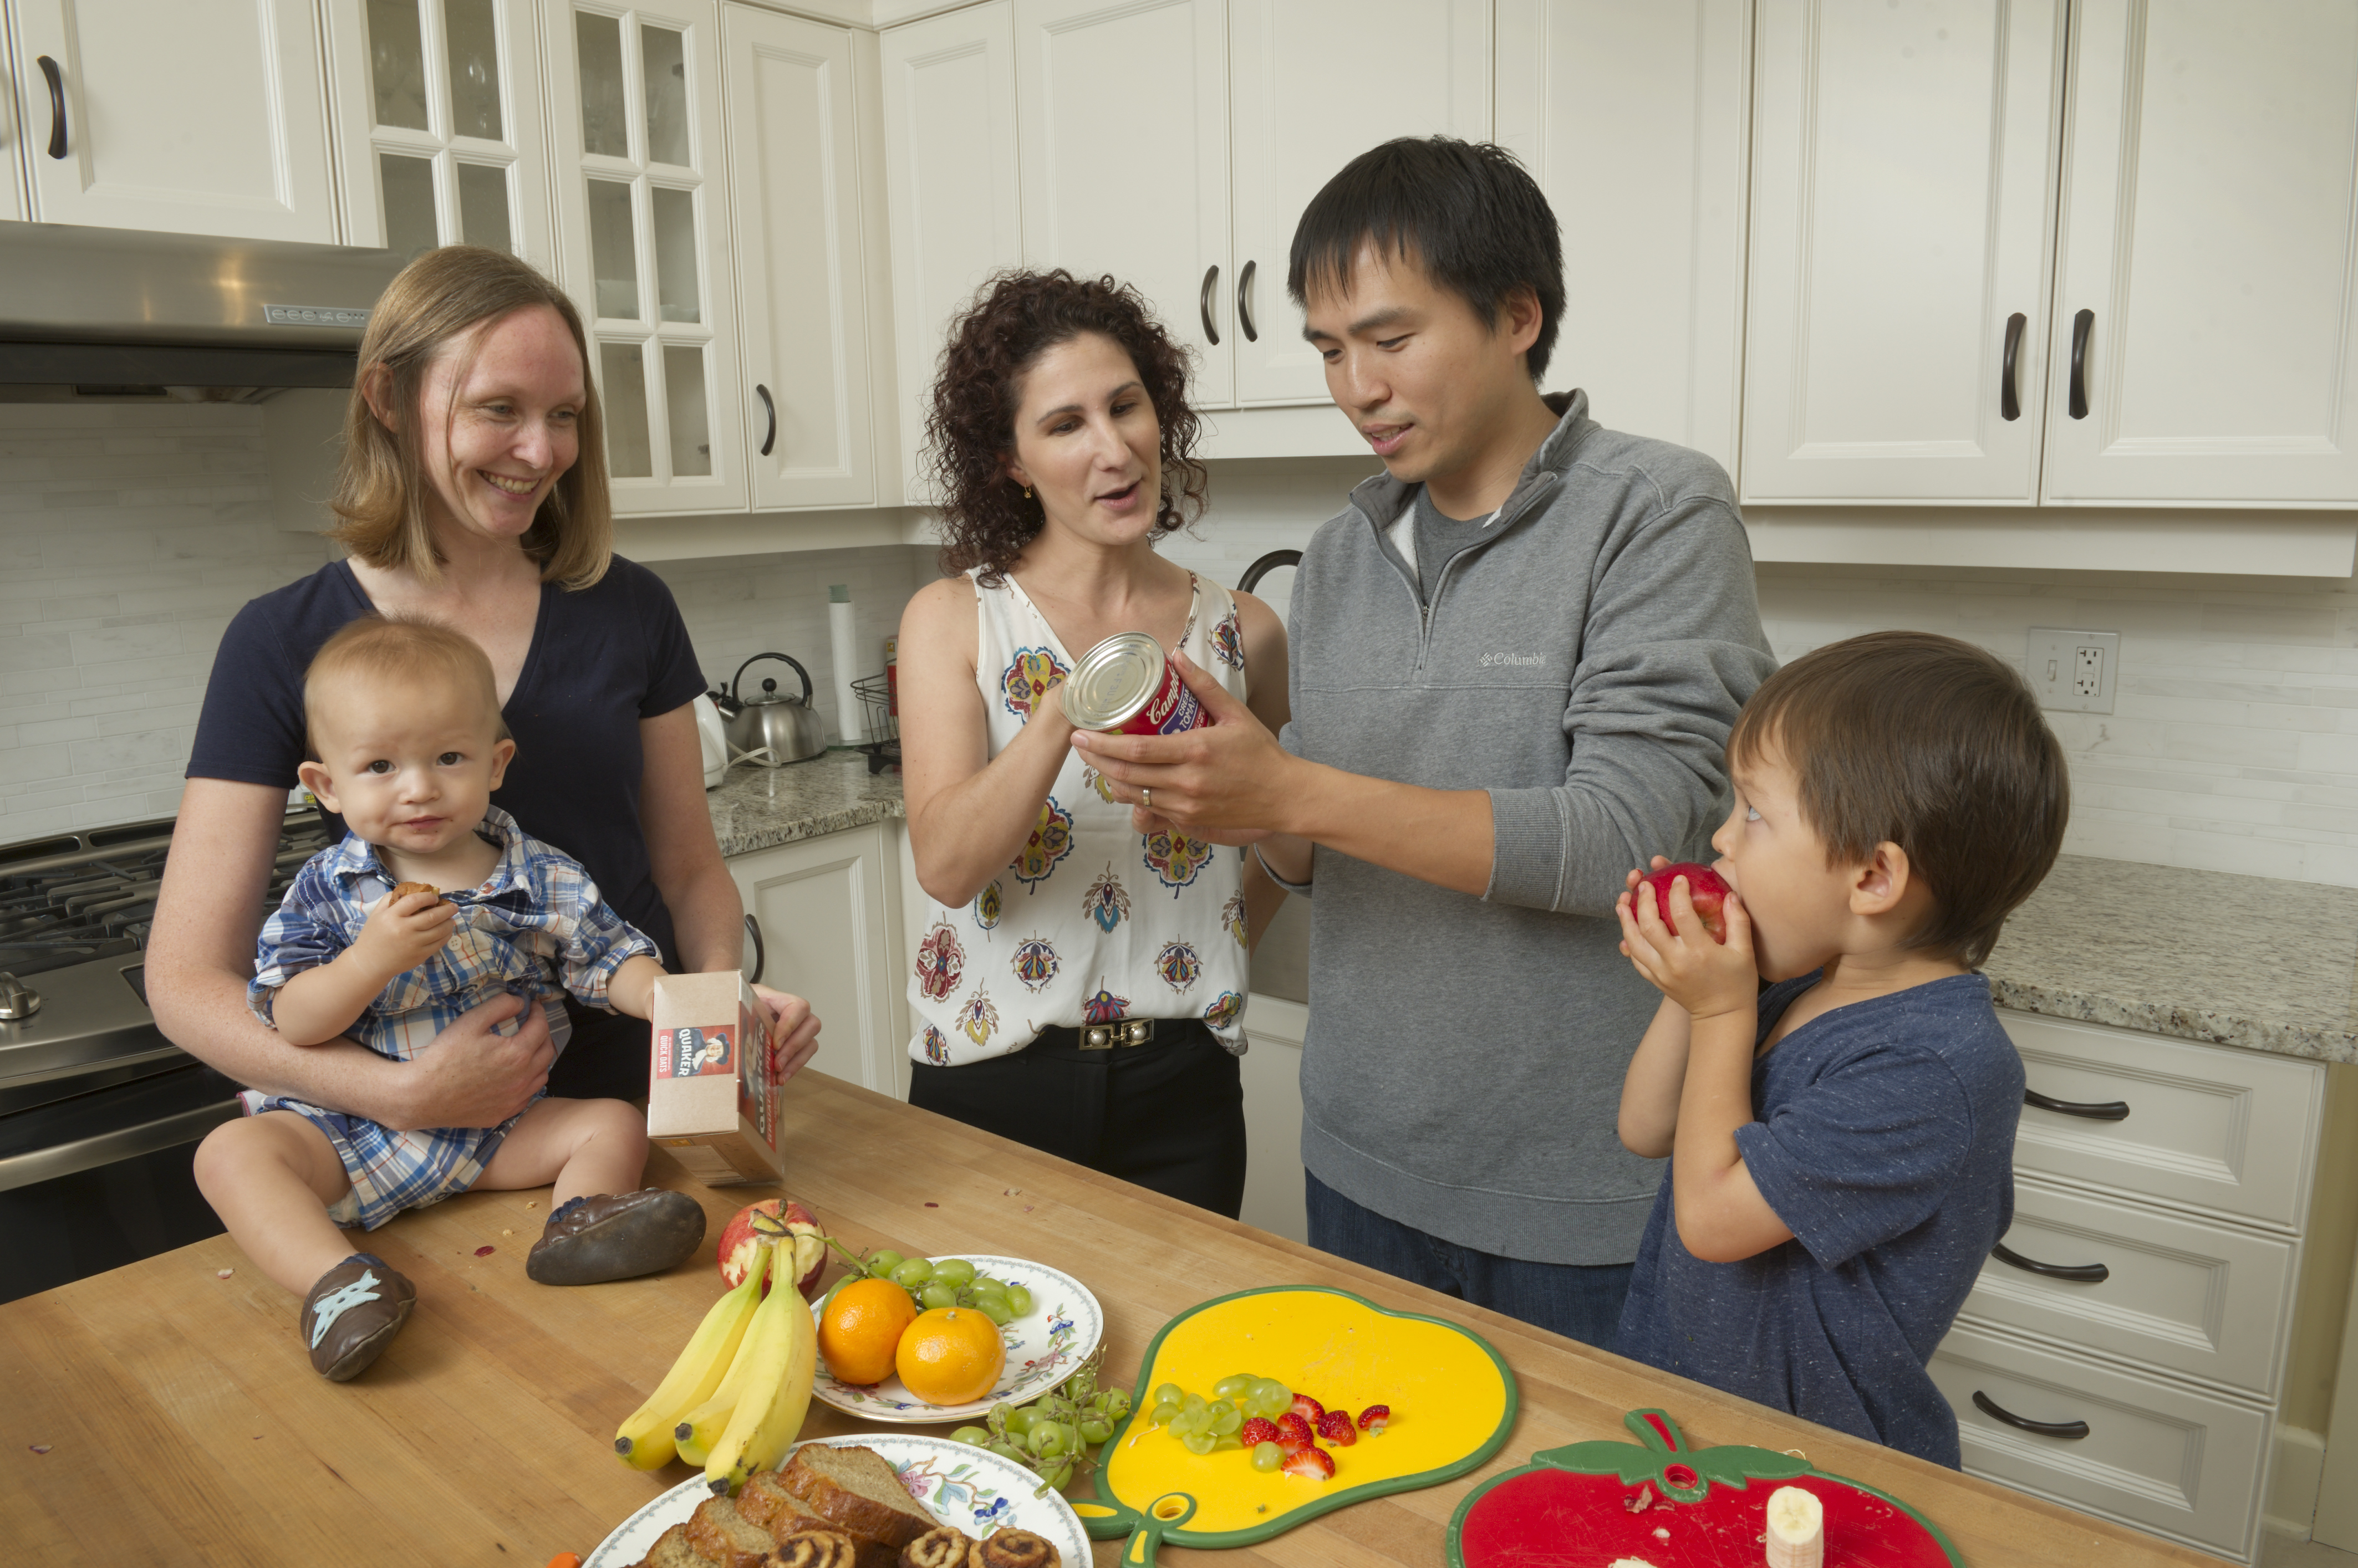 Health educator Lisa Tang discusses food labels with a family